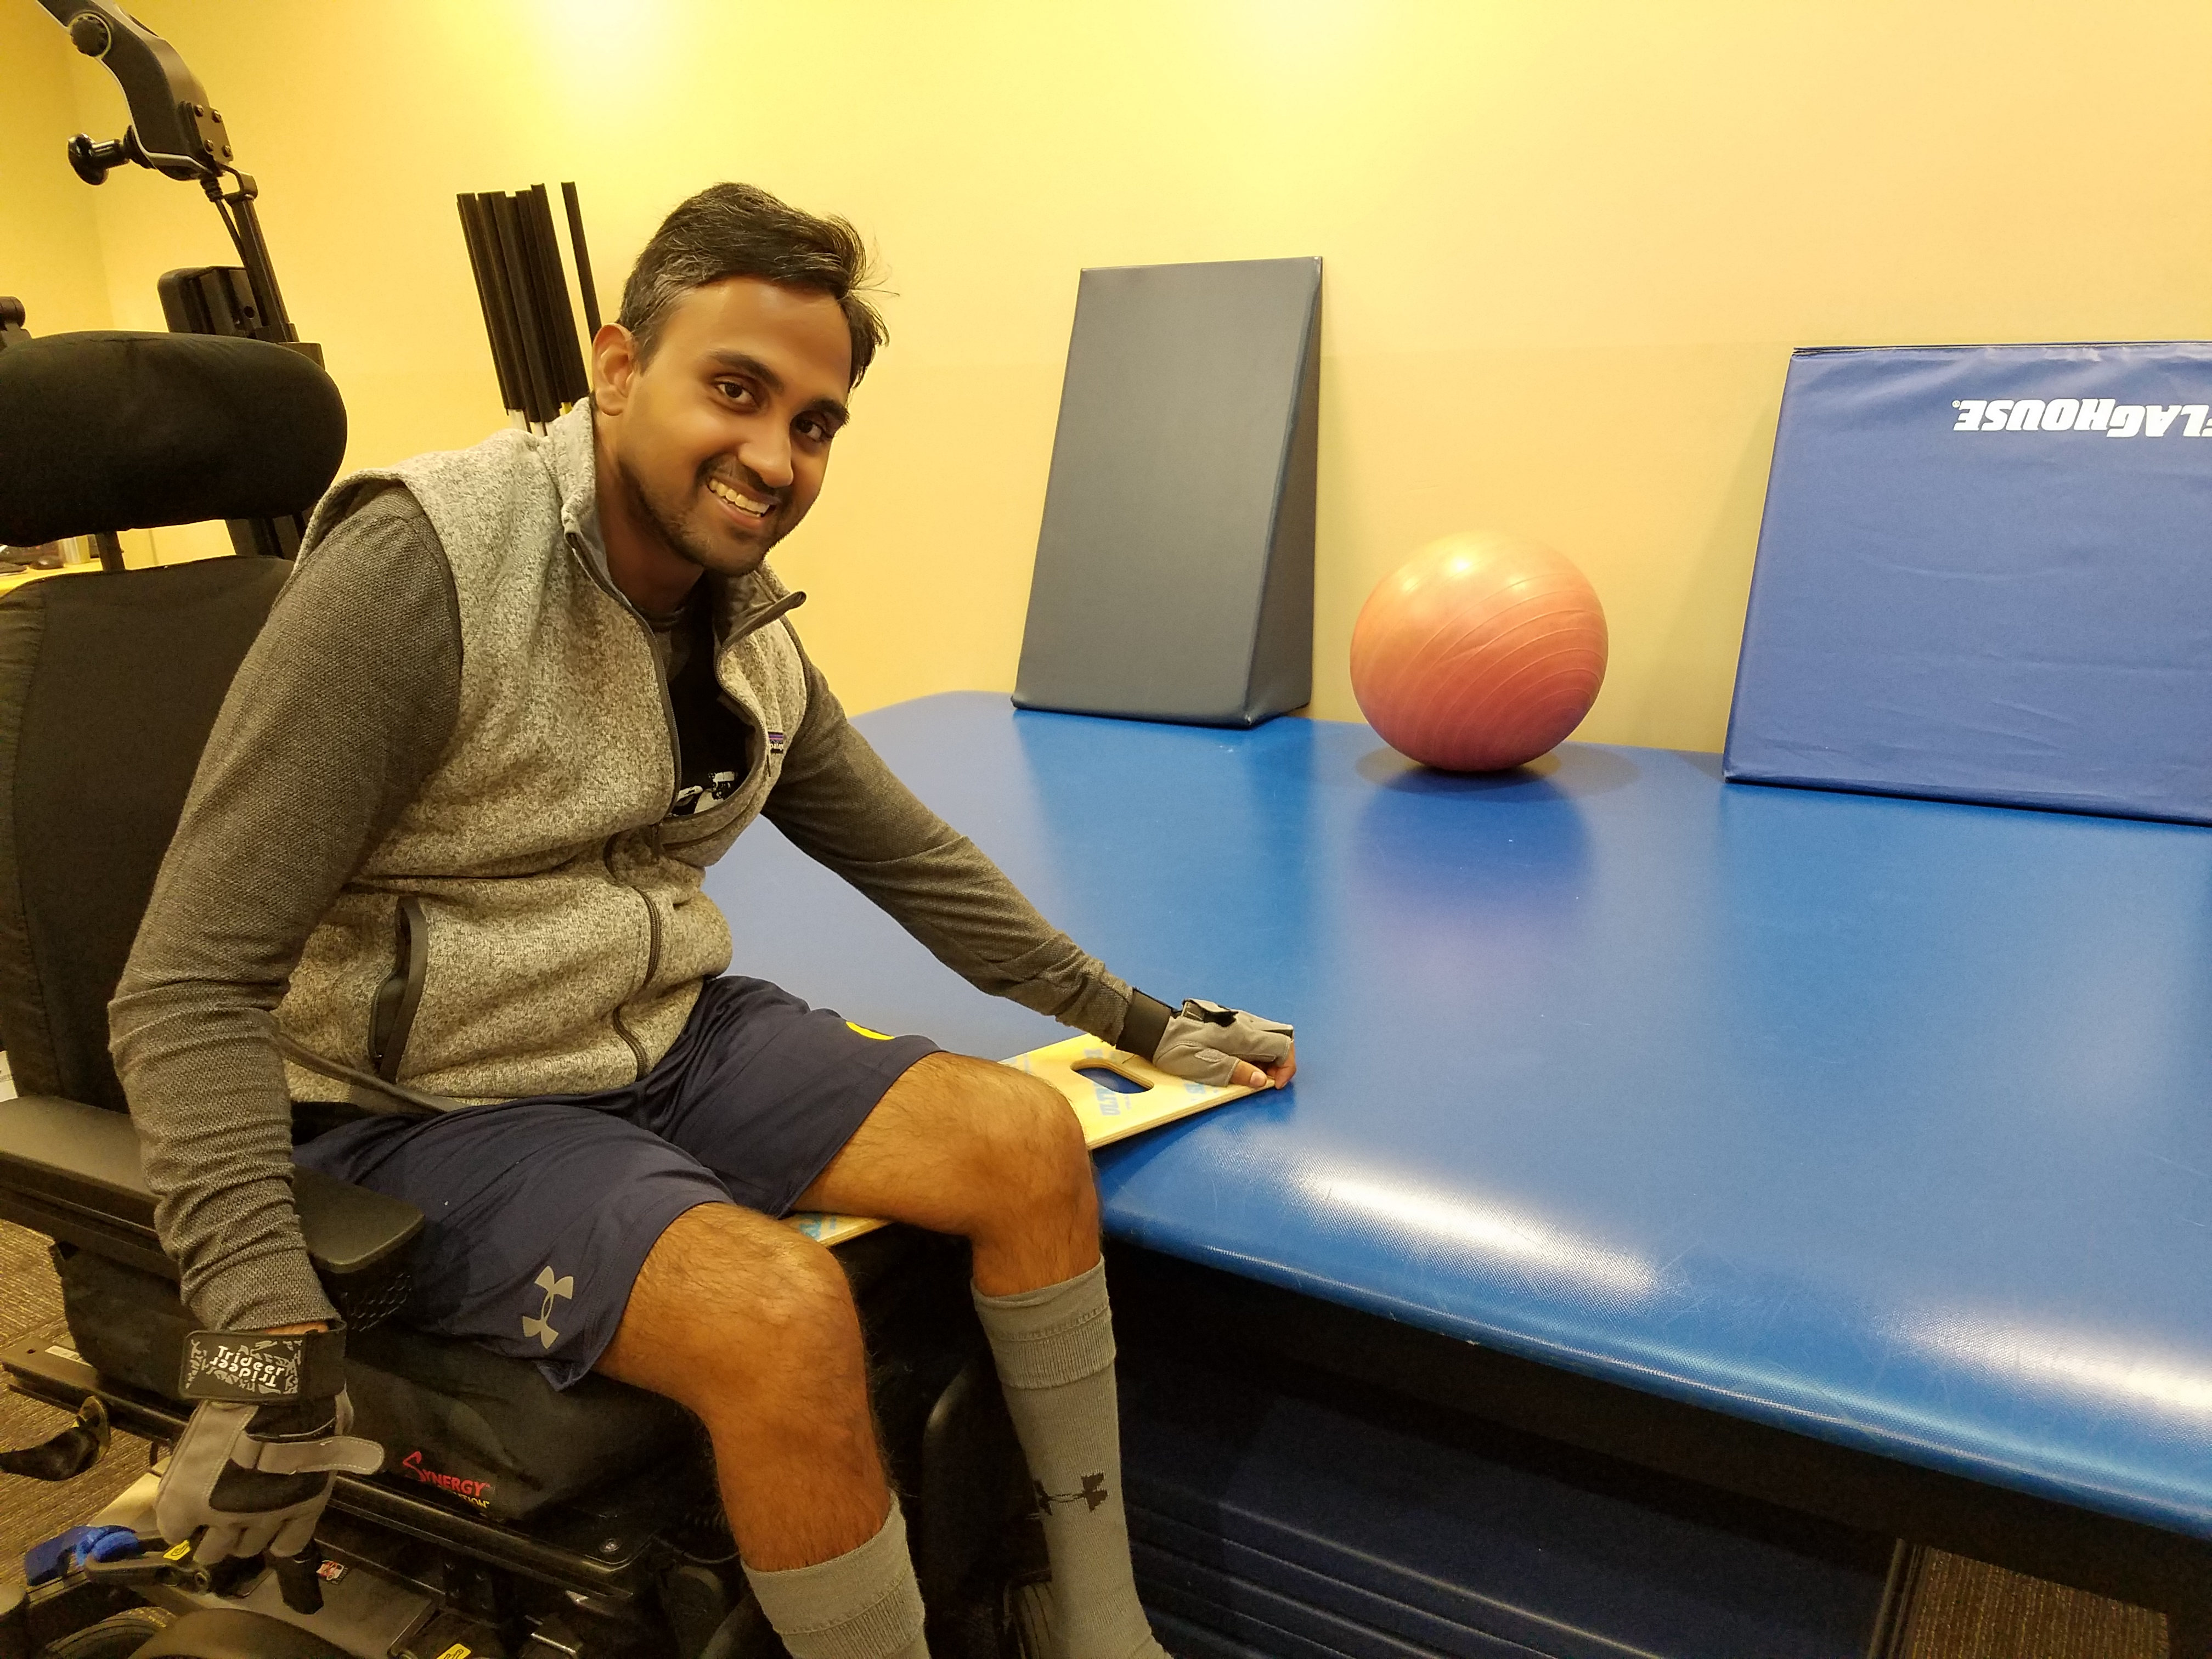 Hinesh in Goodwill of Orange County's Fitness & Technology Center